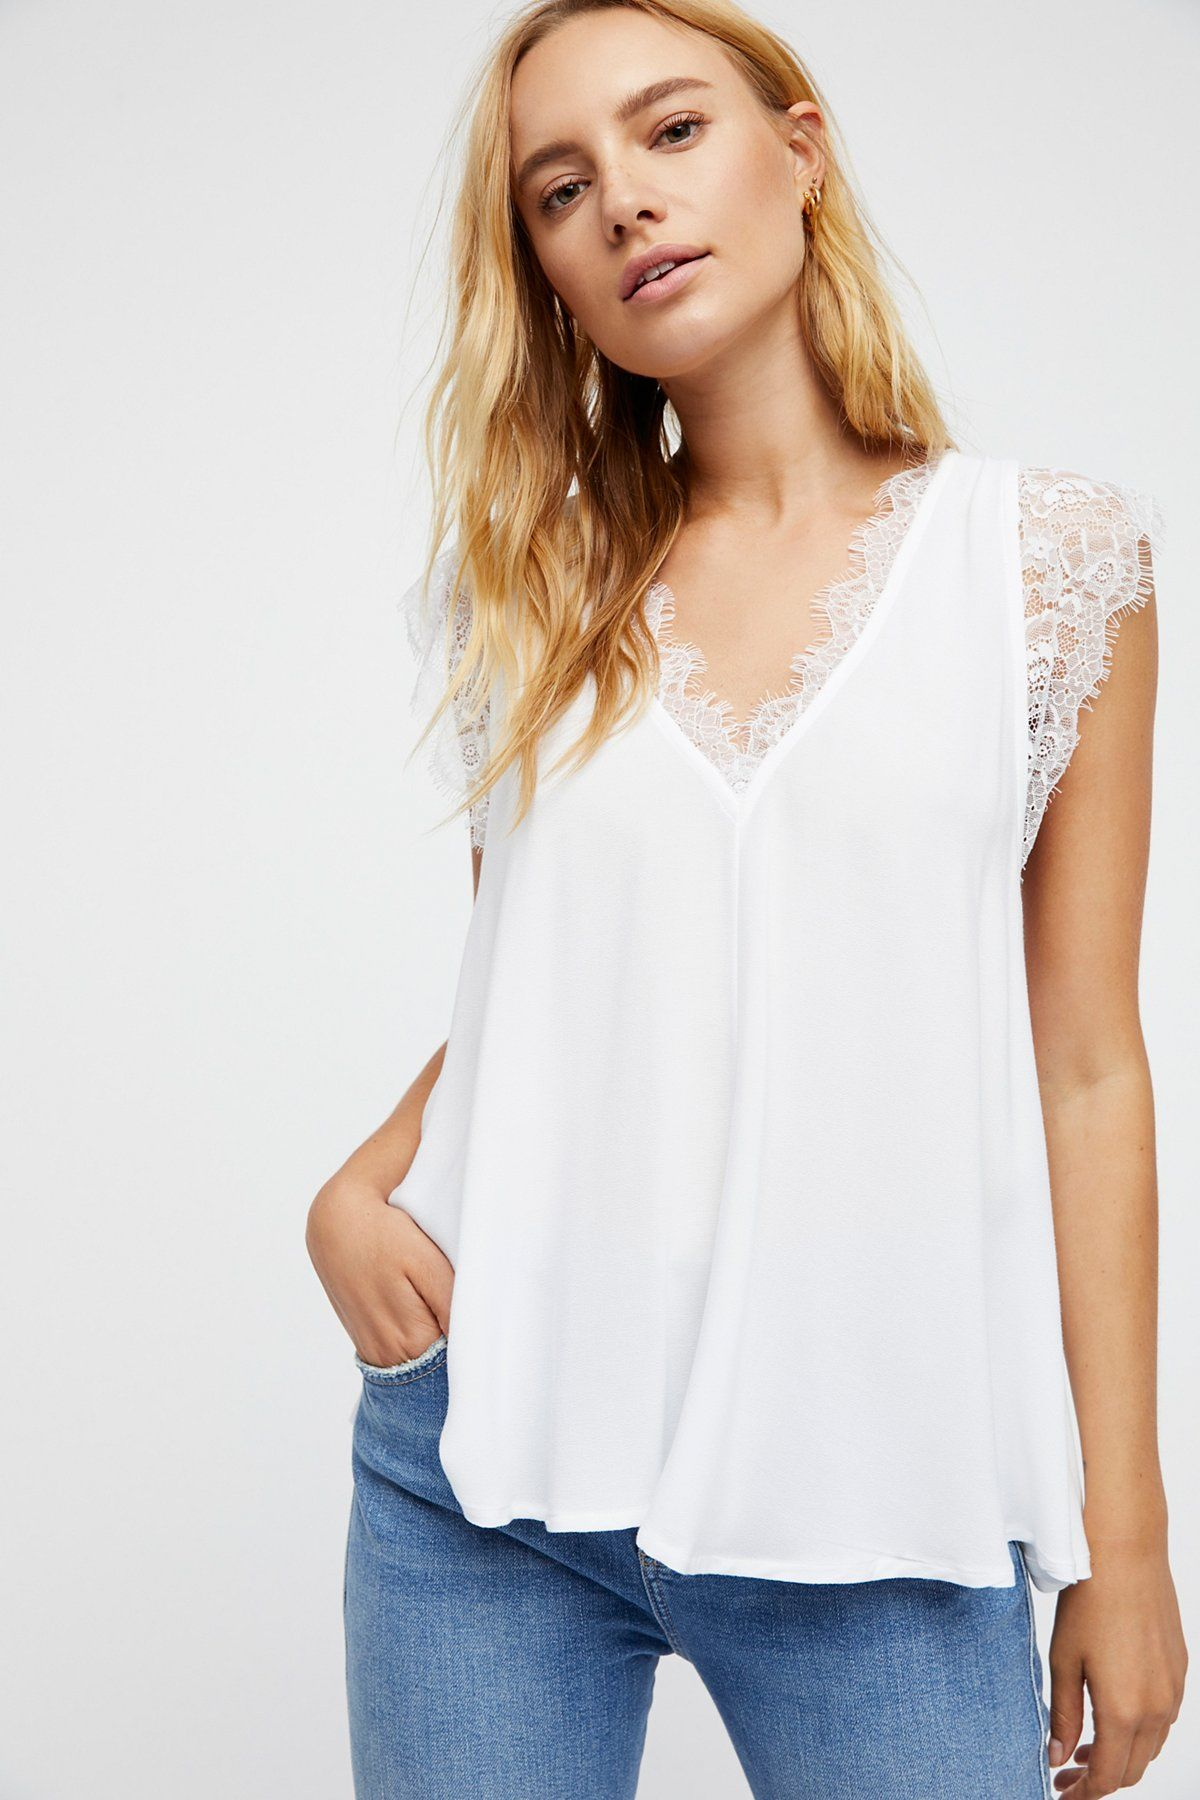 Lovin' On You Top | Femme top featuring a swingy silhouette with lace trim along the V-neckline. * Lightweight, sheer fabrication